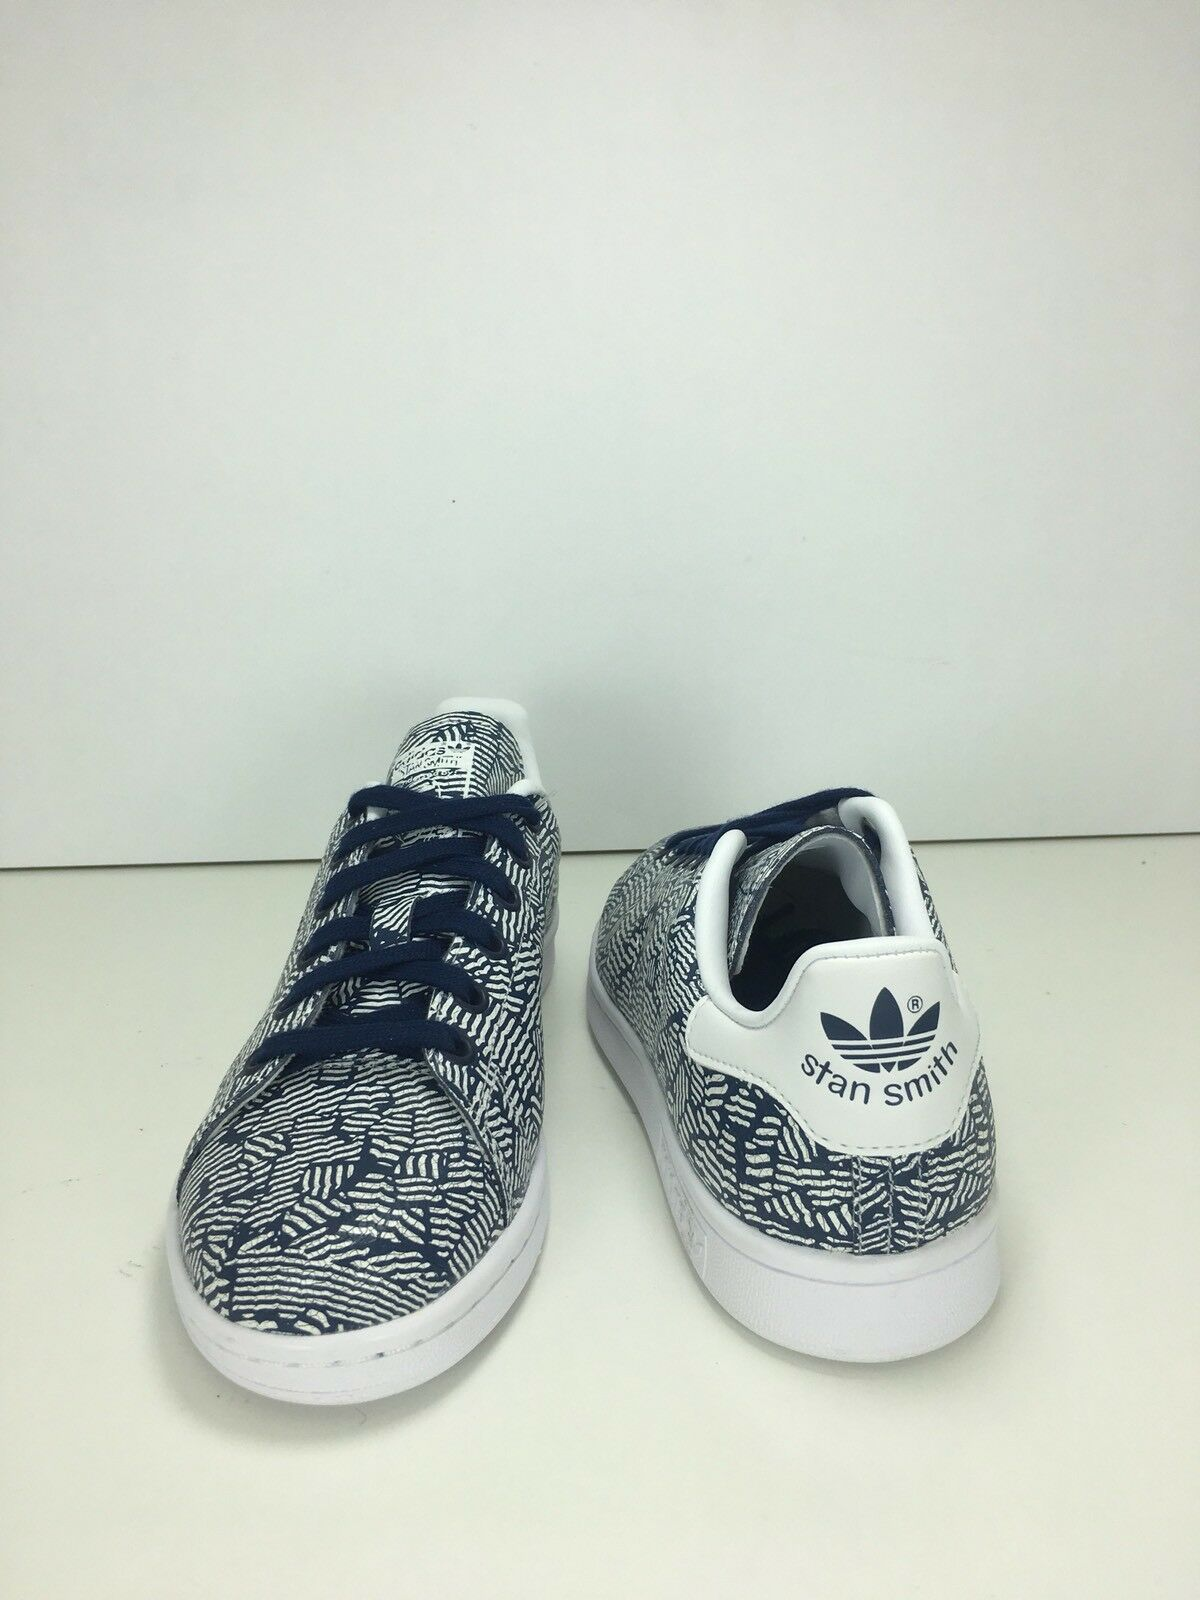 SCARPE  N 36 2/3.  Uk. 4  2/3.  ADIDAS STAN SMITH SNEAKERS BASSE   S76663 1b8c6d